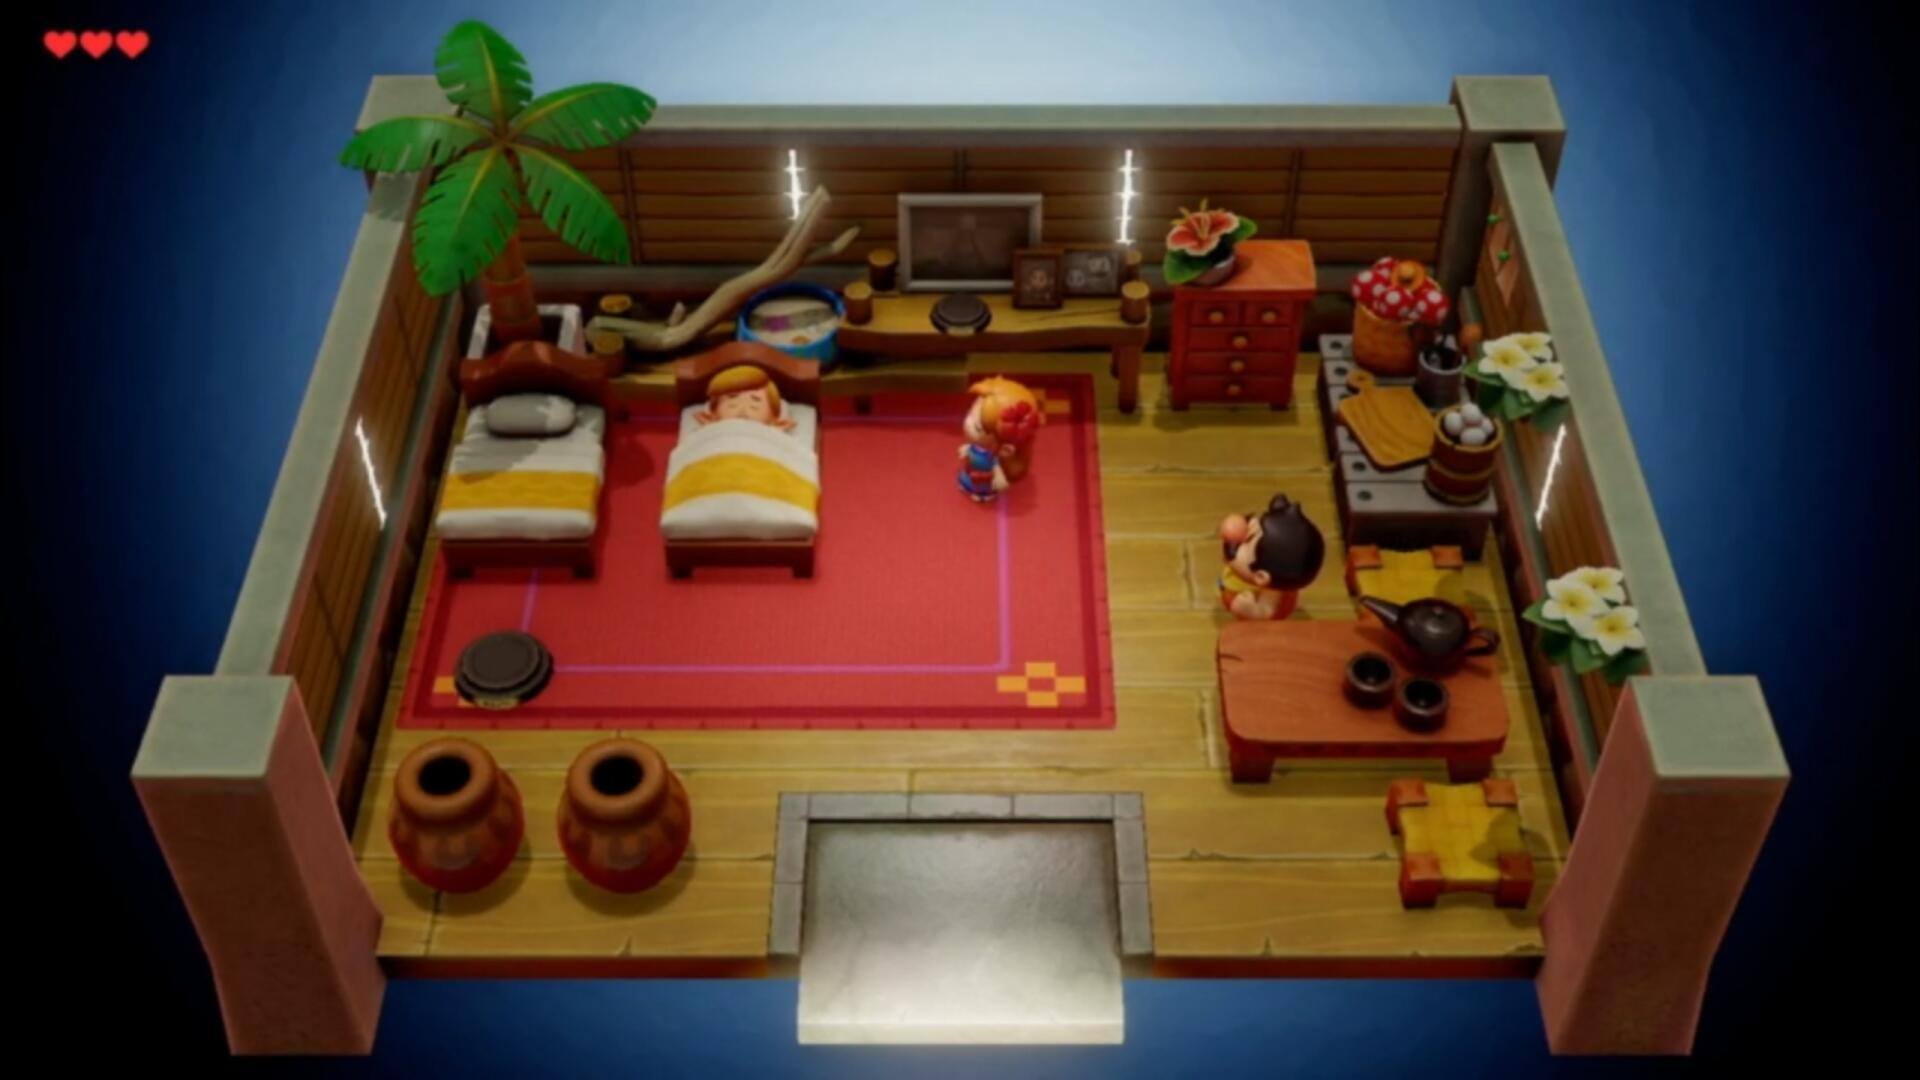 The Link's Awakening Remake is Coming to Switch This September, Will Have A Dungeon Creator